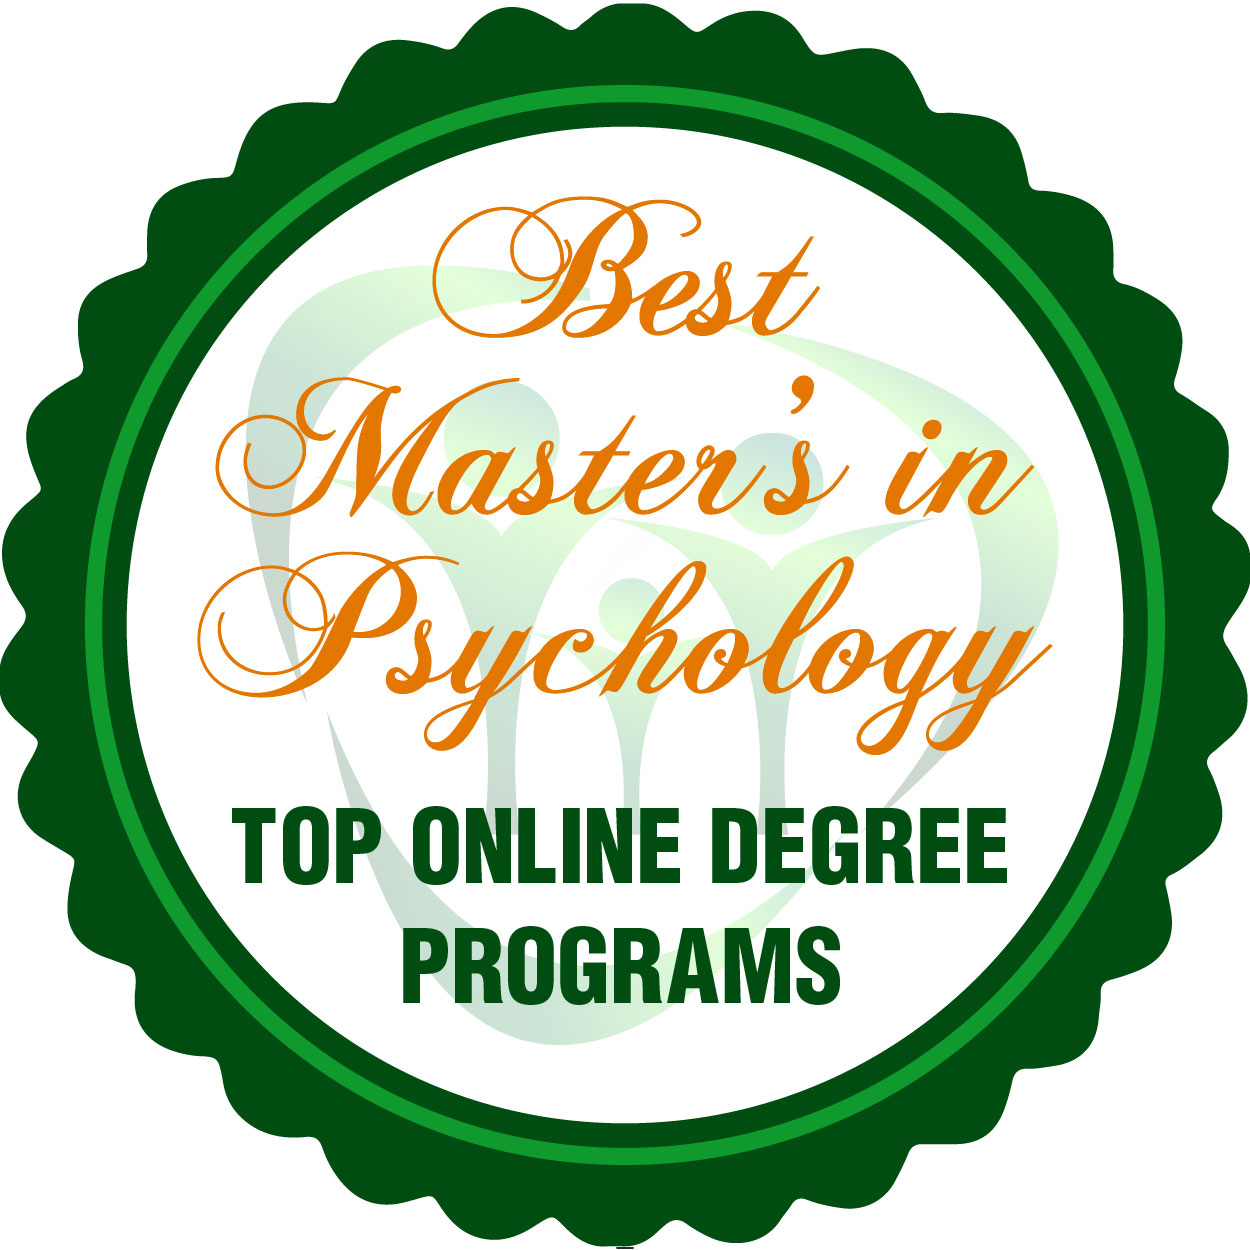 Top Online Phd Degree Programs